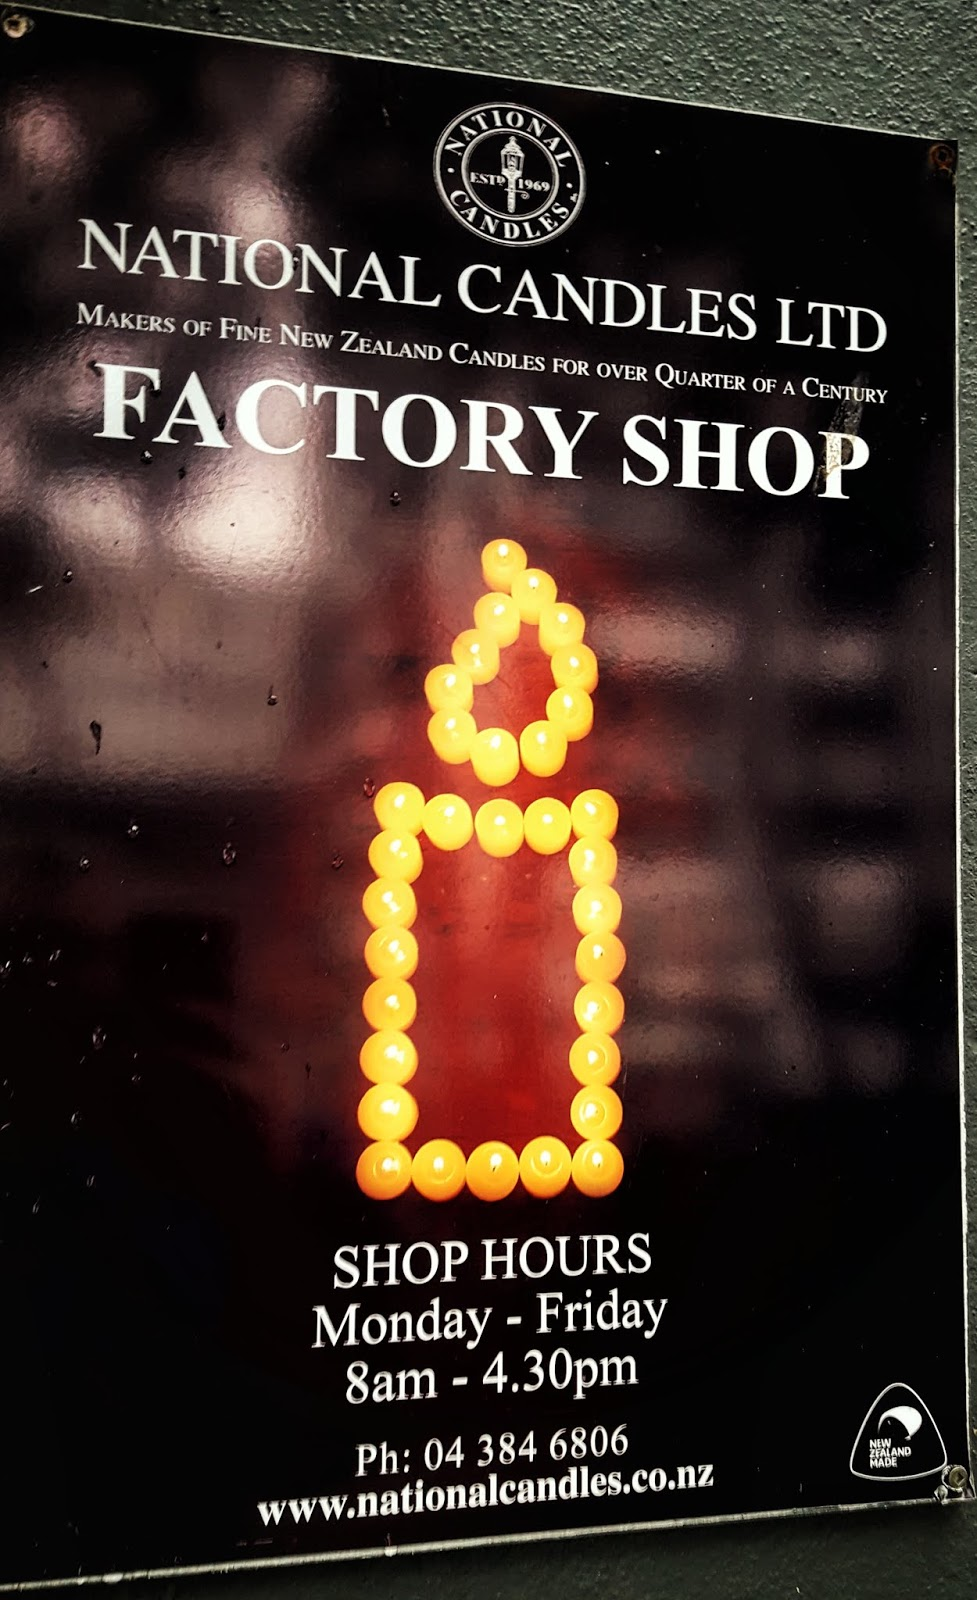 National Candles Ltd shop sign